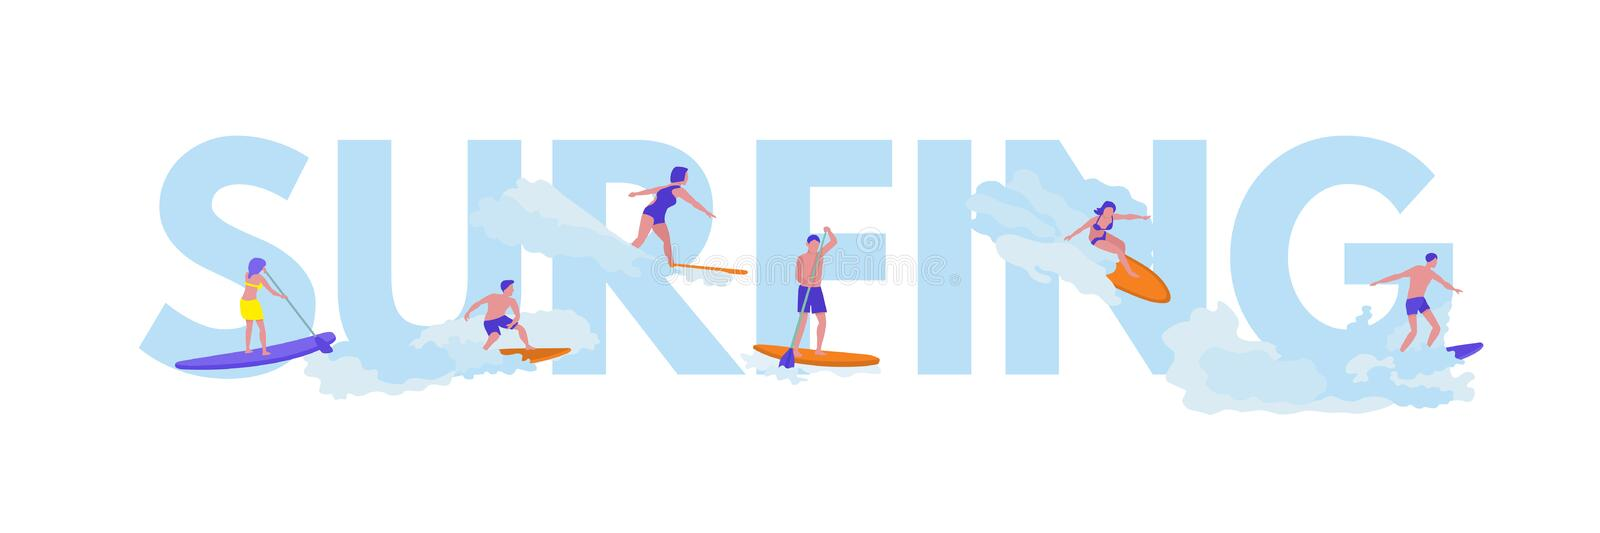 Surfing flat vector illustration with lettering. Young surfers cartoon characters. Colorful surfboards isolated design element. Extreme water sport. Ocean, sea vector illustration